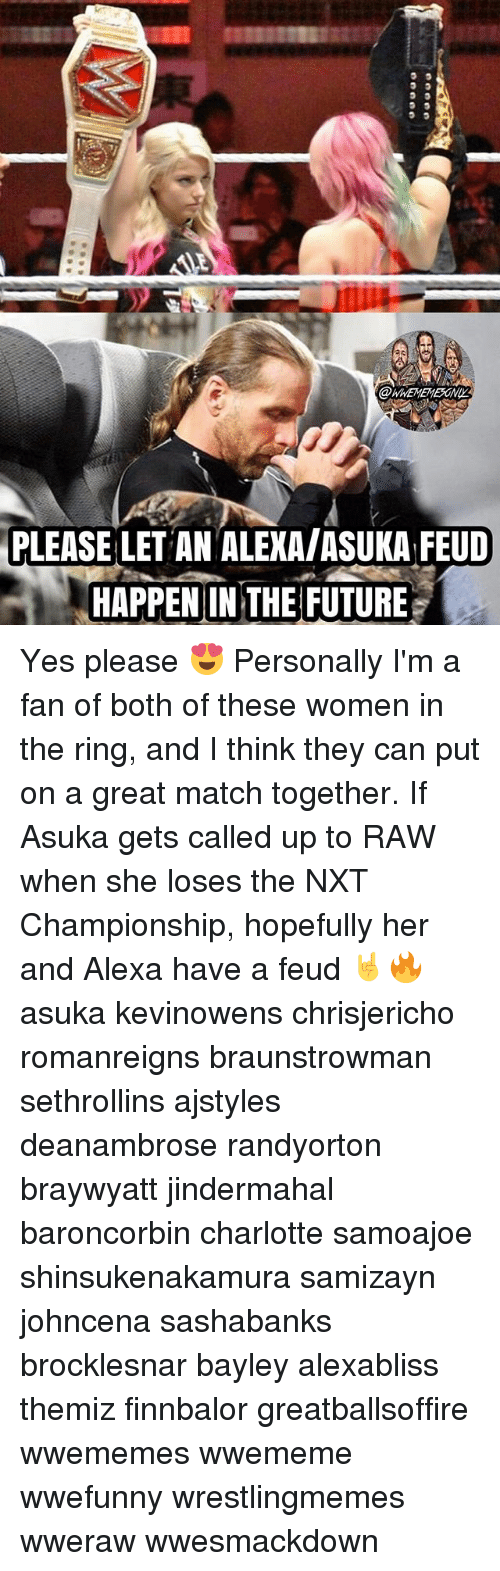 Memes, The Ring, and Charlotte: WWEMEMESONI  PLEASE LET AN ALEXA/ASUKA FEUD  .HAPPENINTHE FUTURES Yes please 😍 Personally I'm a fan of both of these women in the ring, and I think they can put on a great match together. If Asuka gets called up to RAW when she loses the NXT Championship, hopefully her and Alexa have a feud 🤘🔥 asuka kevinowens chrisjericho romanreigns braunstrowman sethrollins ajstyles deanambrose randyorton braywyatt jindermahal baroncorbin charlotte samoajoe shinsukenakamura samizayn johncena sashabanks brocklesnar bayley alexabliss themiz finnbalor greatballsoffire wwememes wwememe wwefunny wrestlingmemes wweraw wwesmackdown